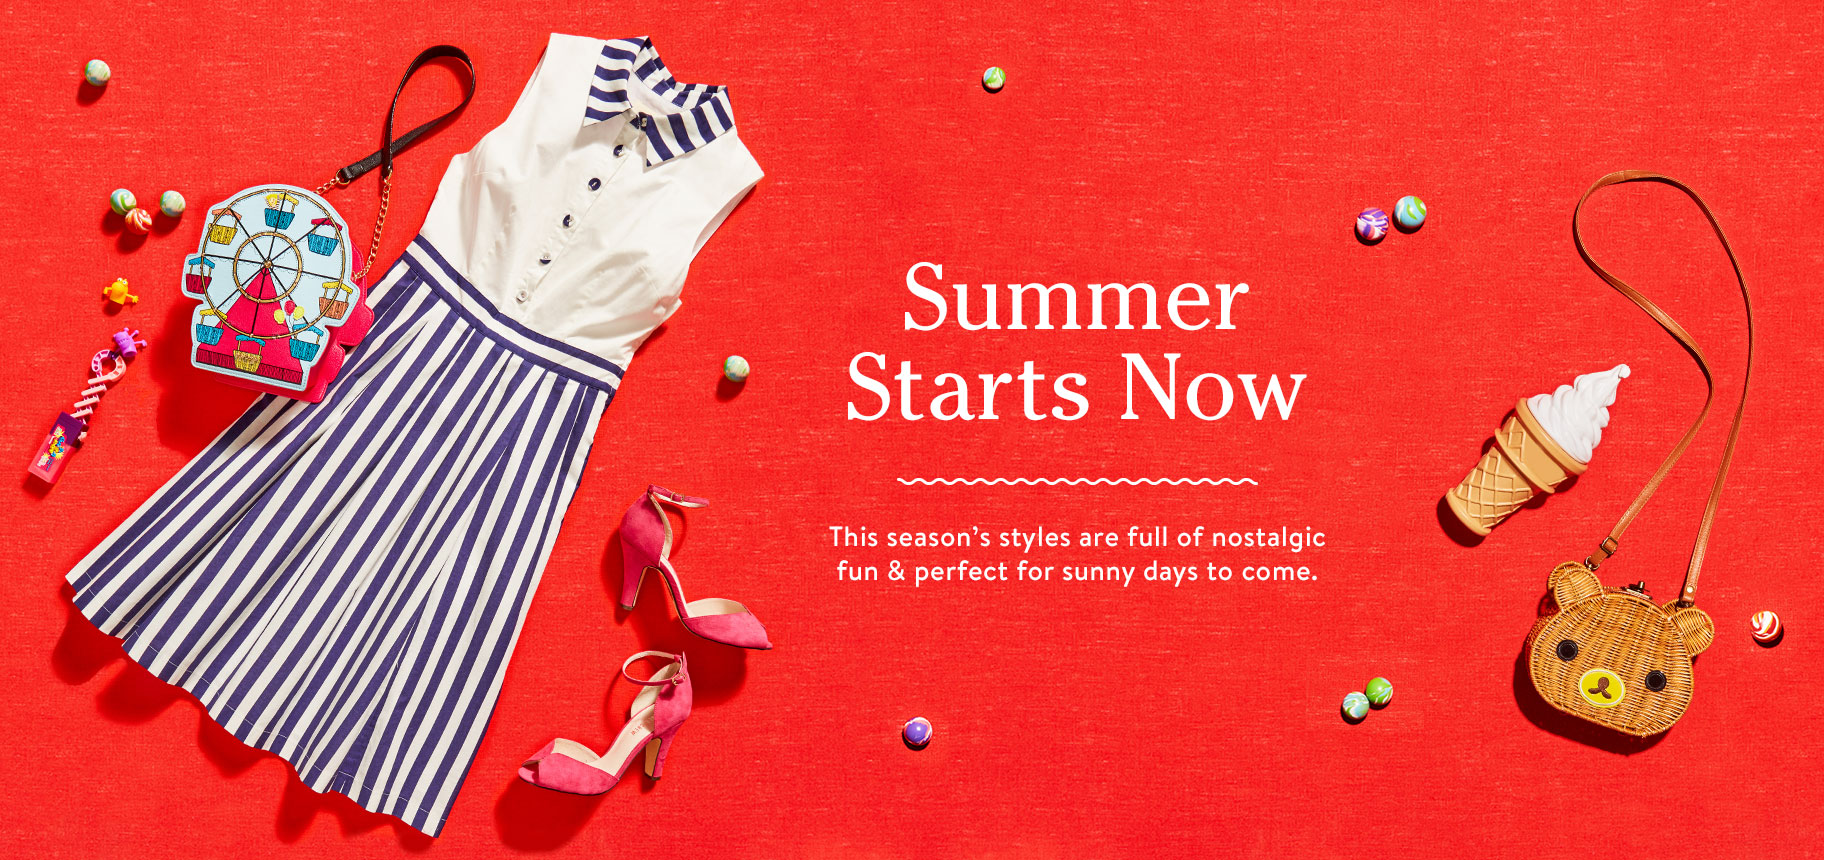 Summer Starts Now. This season's styles are full of nostalgic fun & perfect for sunny days to come. Shop Summer Trends.